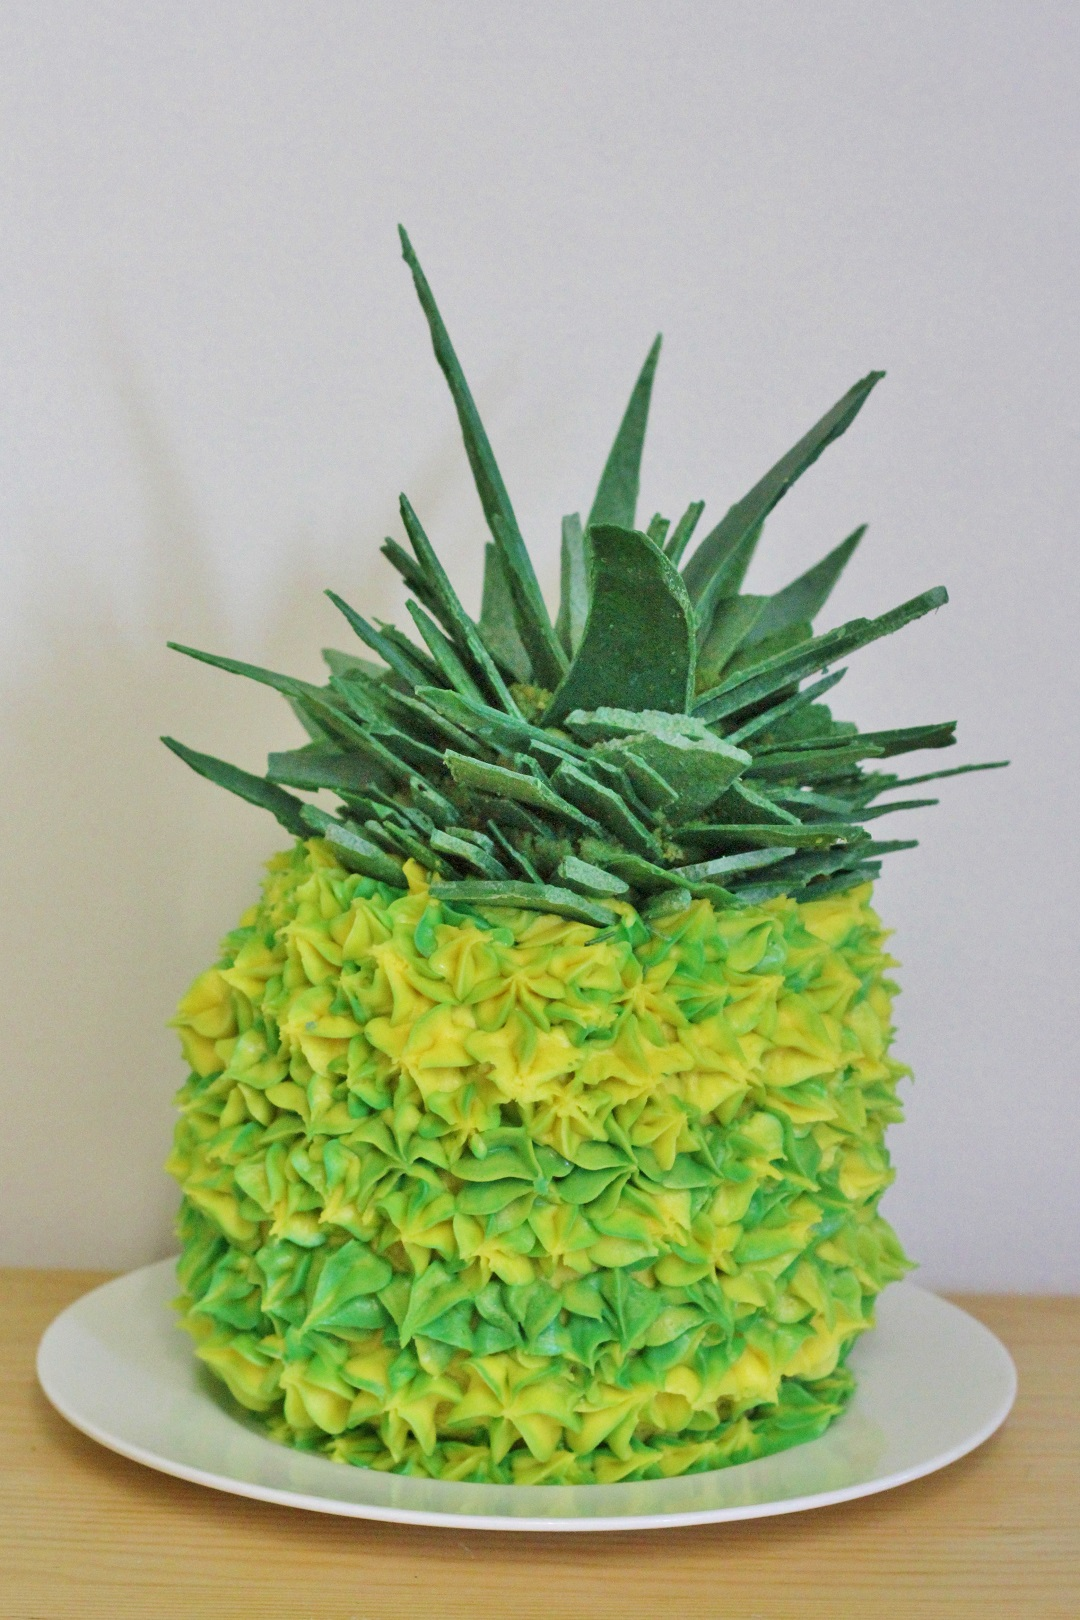 The Bake Off Bake Along Week One - Pineapple Illusion Cake 7